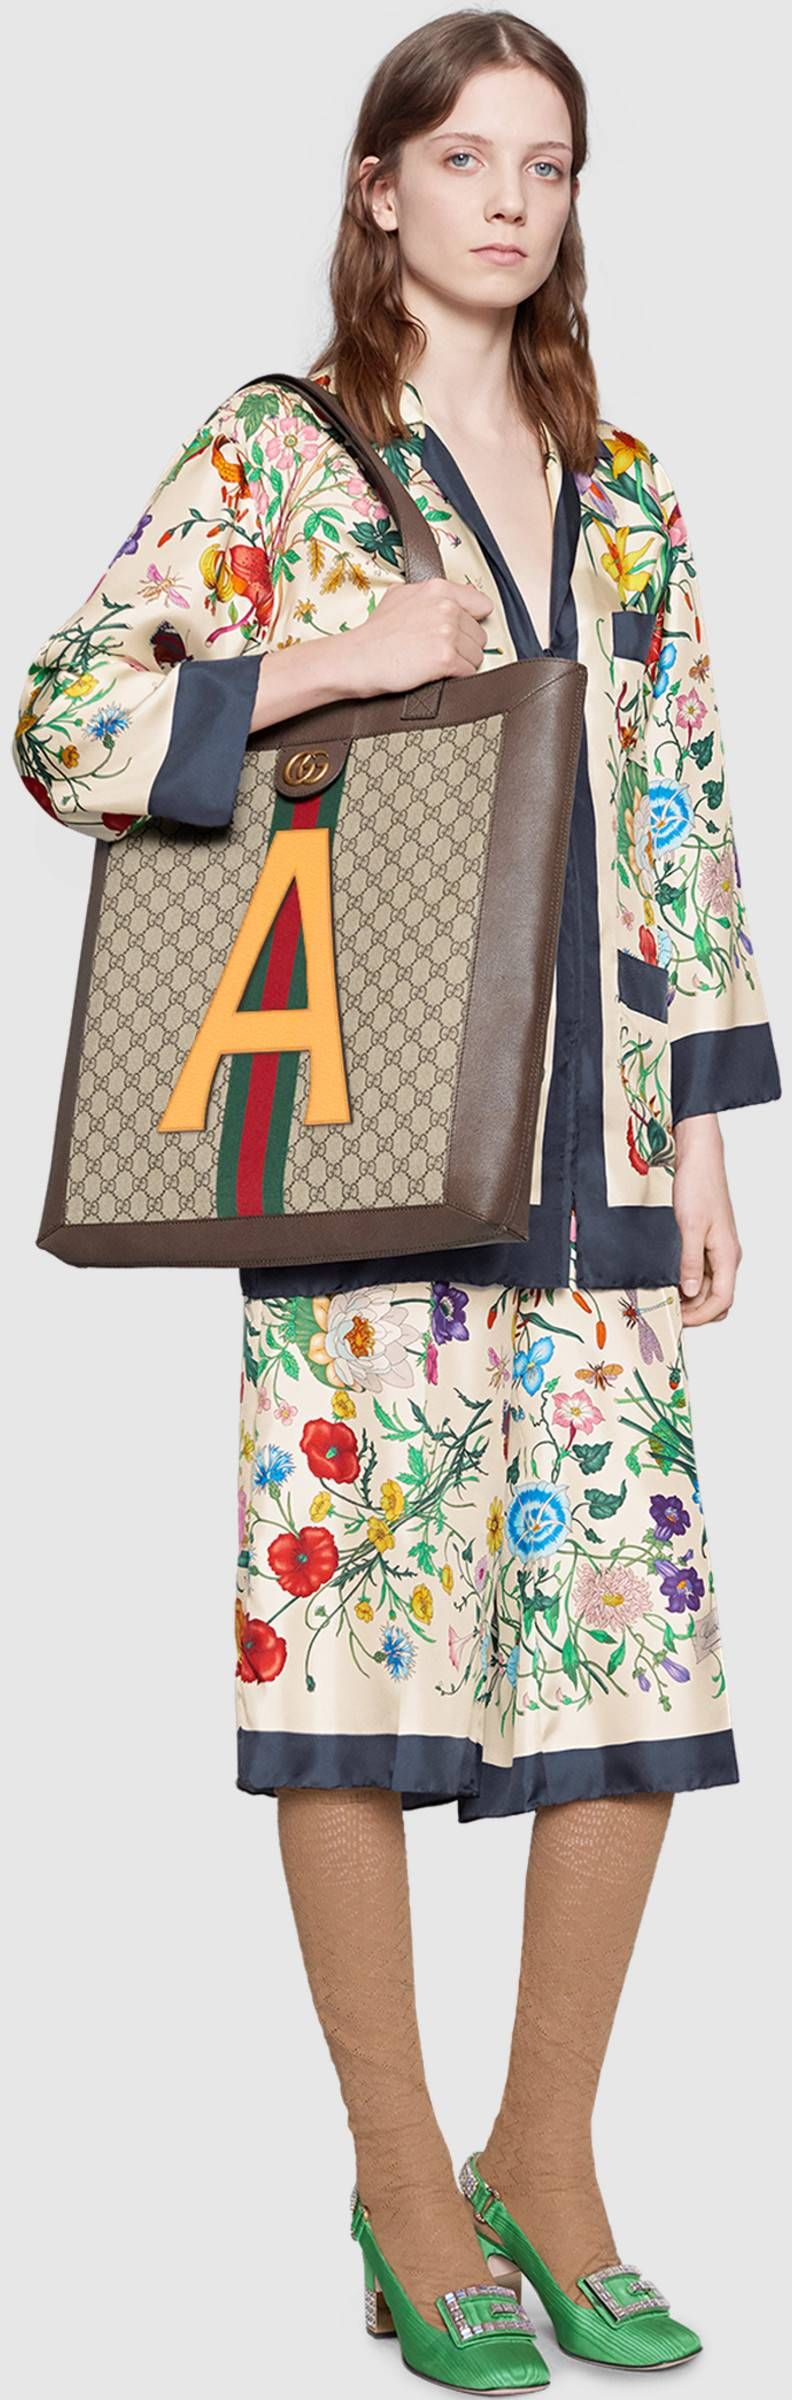 535fae12a6bb Gucci Official Site – Redefining modern luxury fashion.   Staying in ...